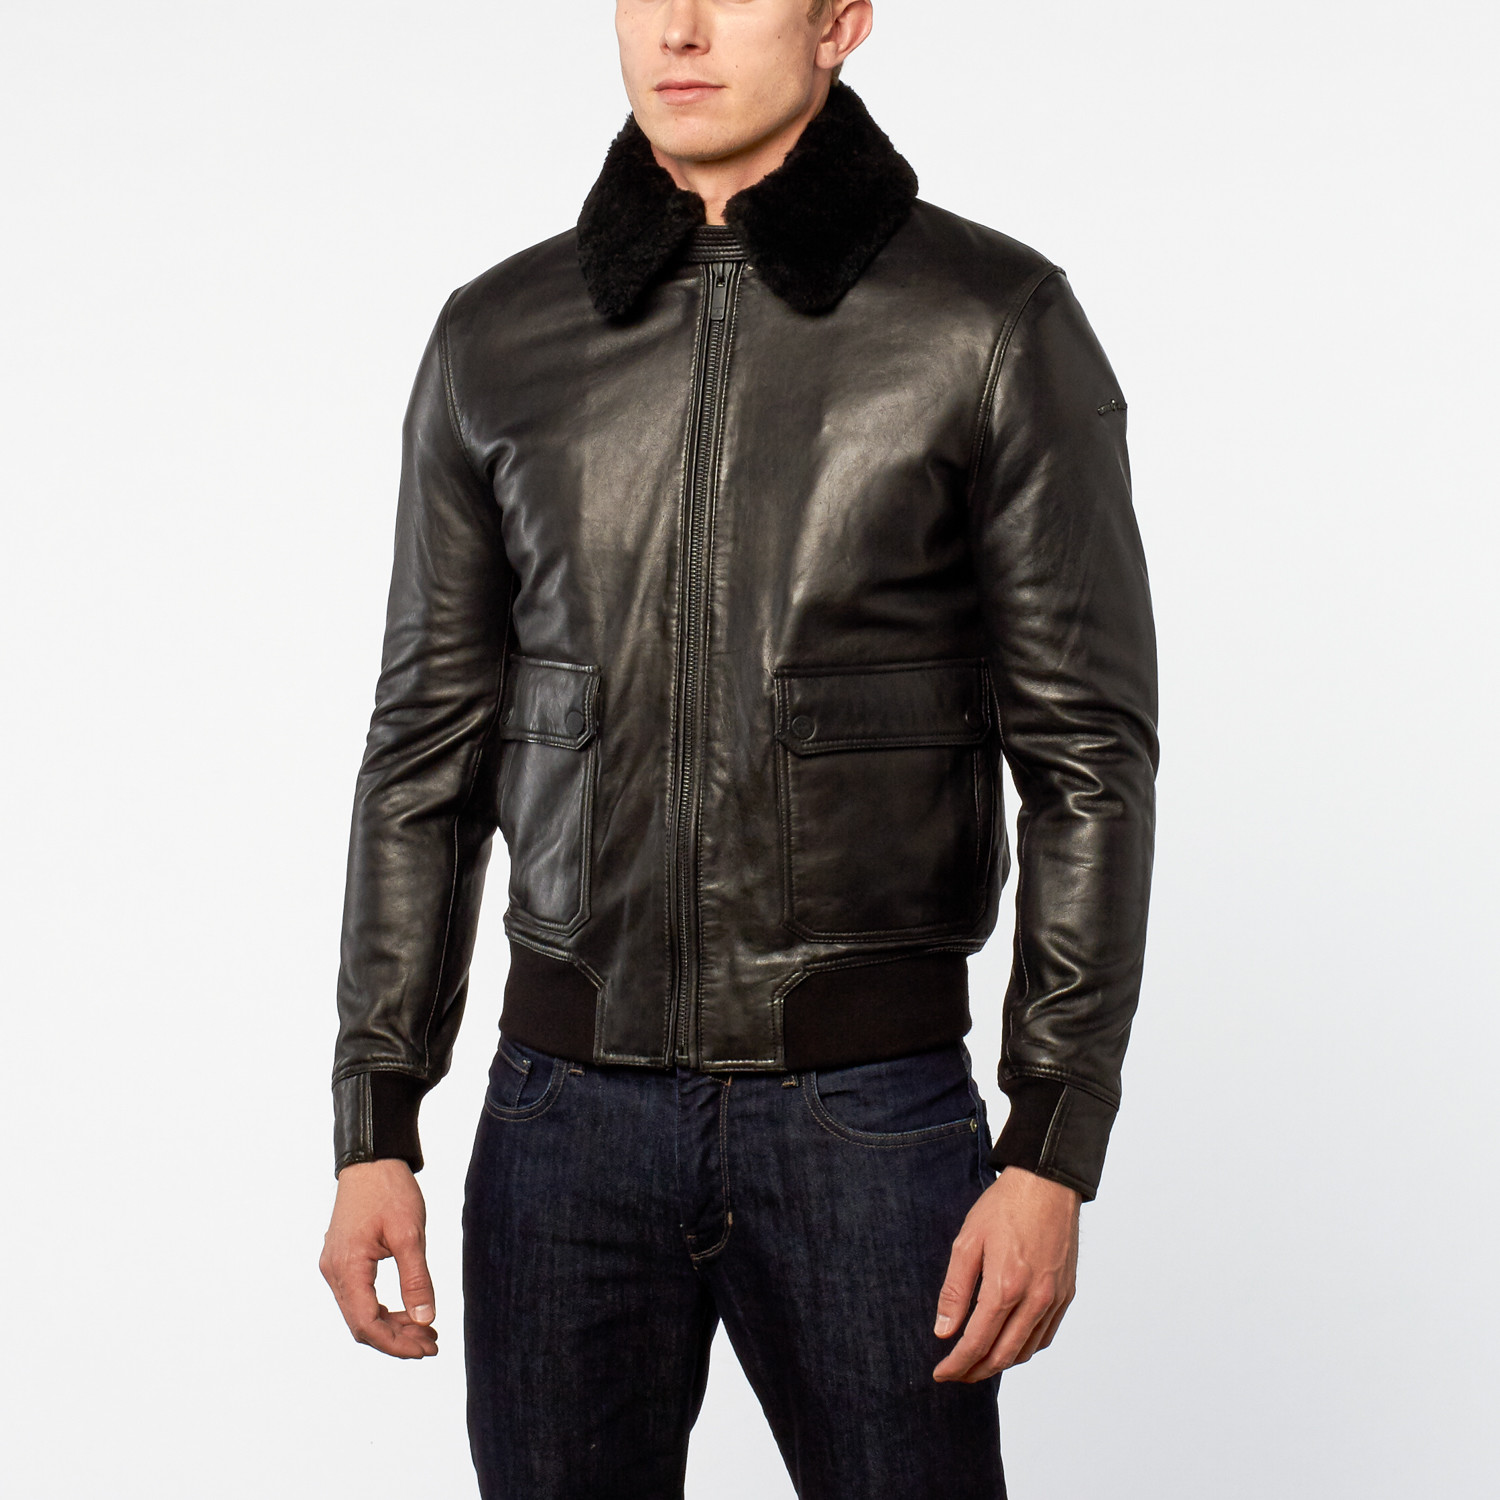 English leather jackets